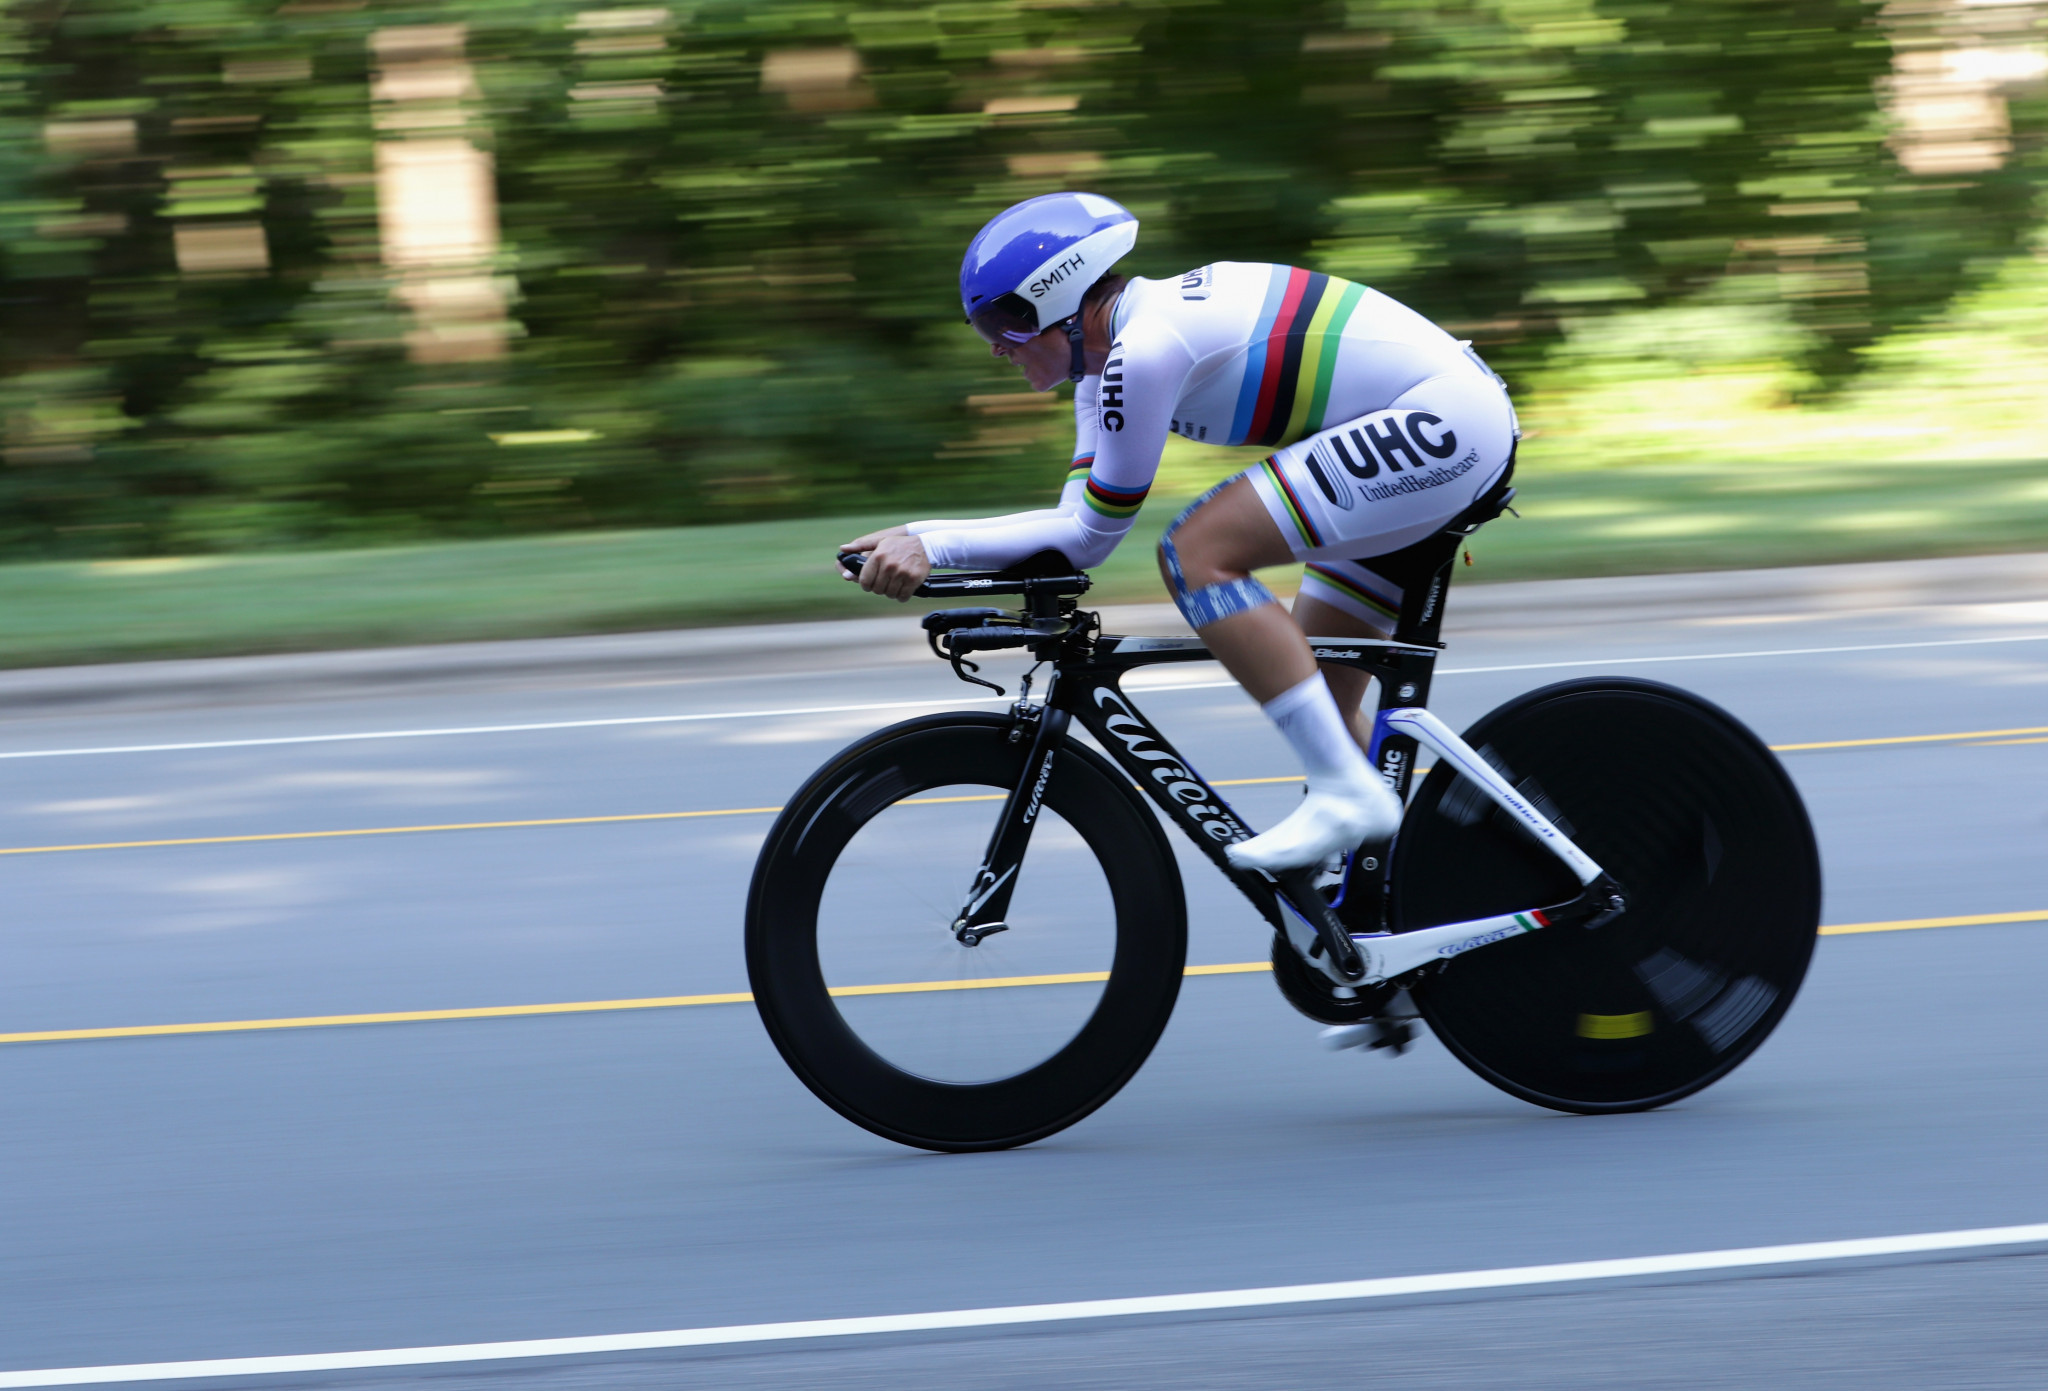 Paralympic gold medallists enjoy successful final day at UCI Para-cycling Road World Cup